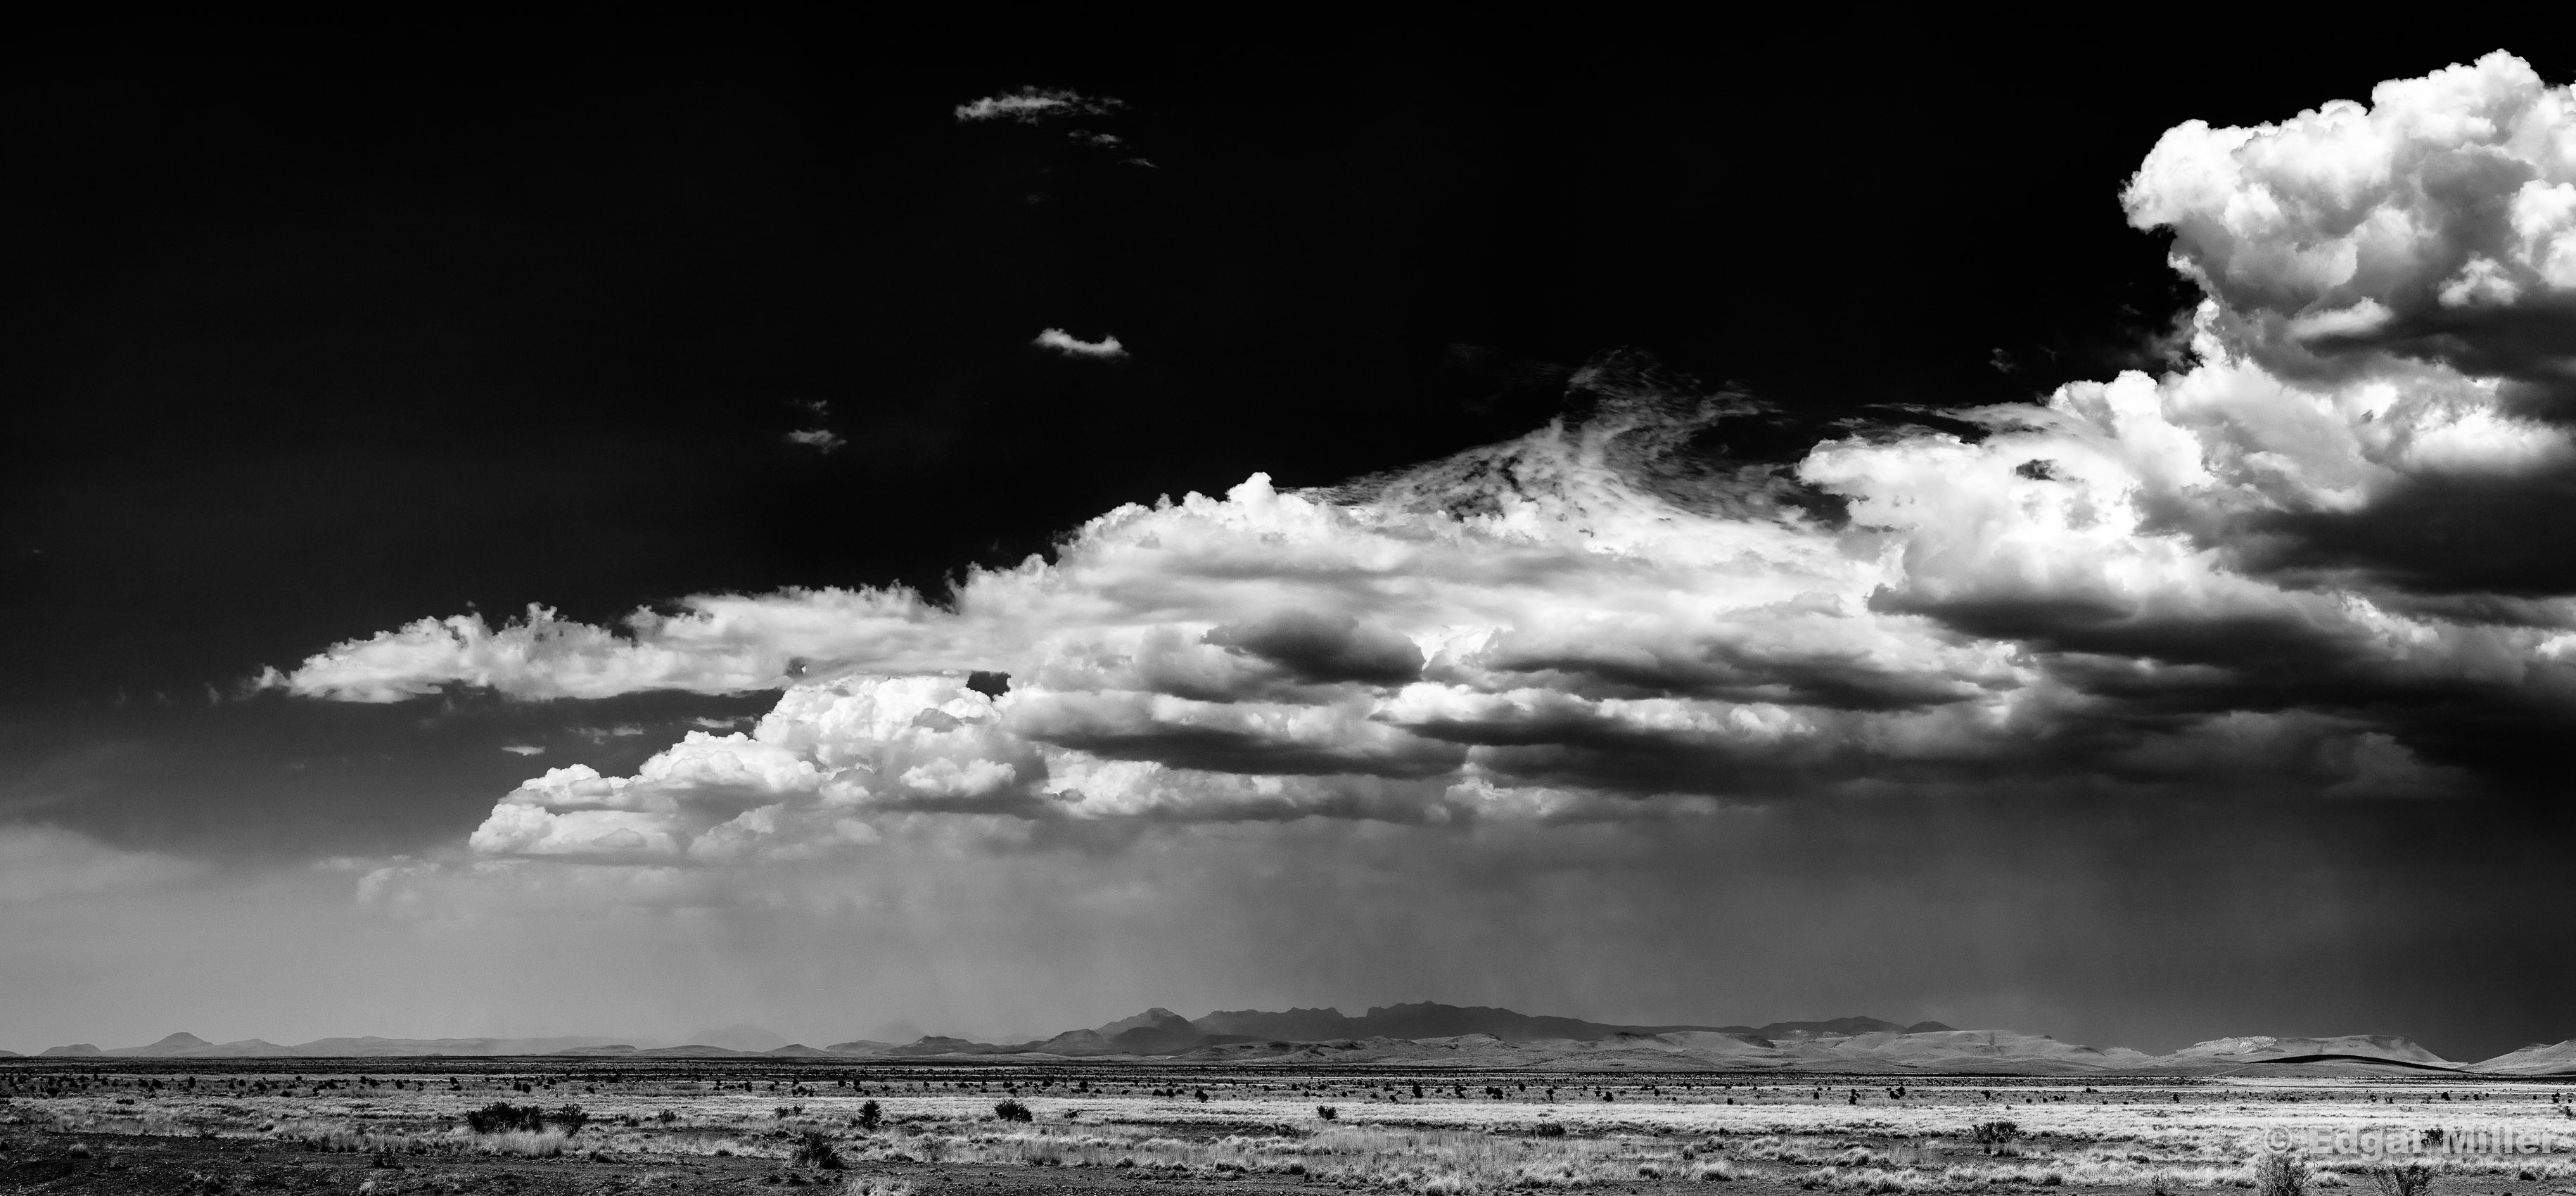 Sky, Clouds & Mountains, West Texas